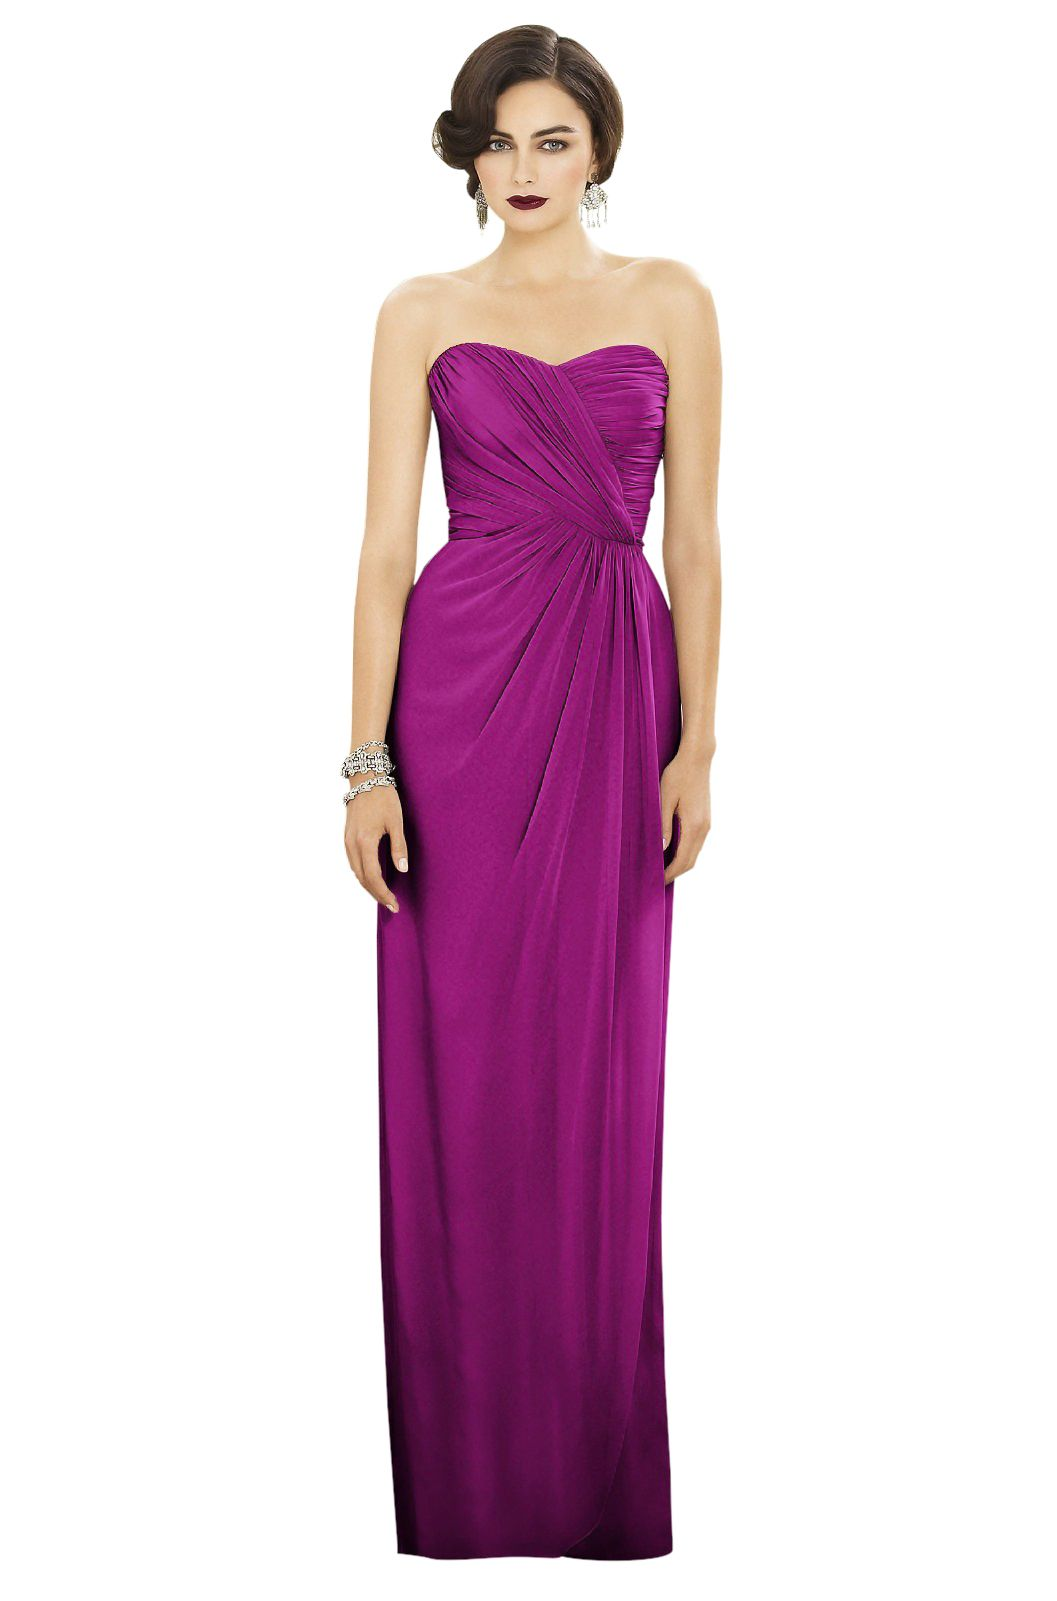 Dessy 2882 Bridesmaid Dress | Weddington Way | Wedding | Pinterest ...